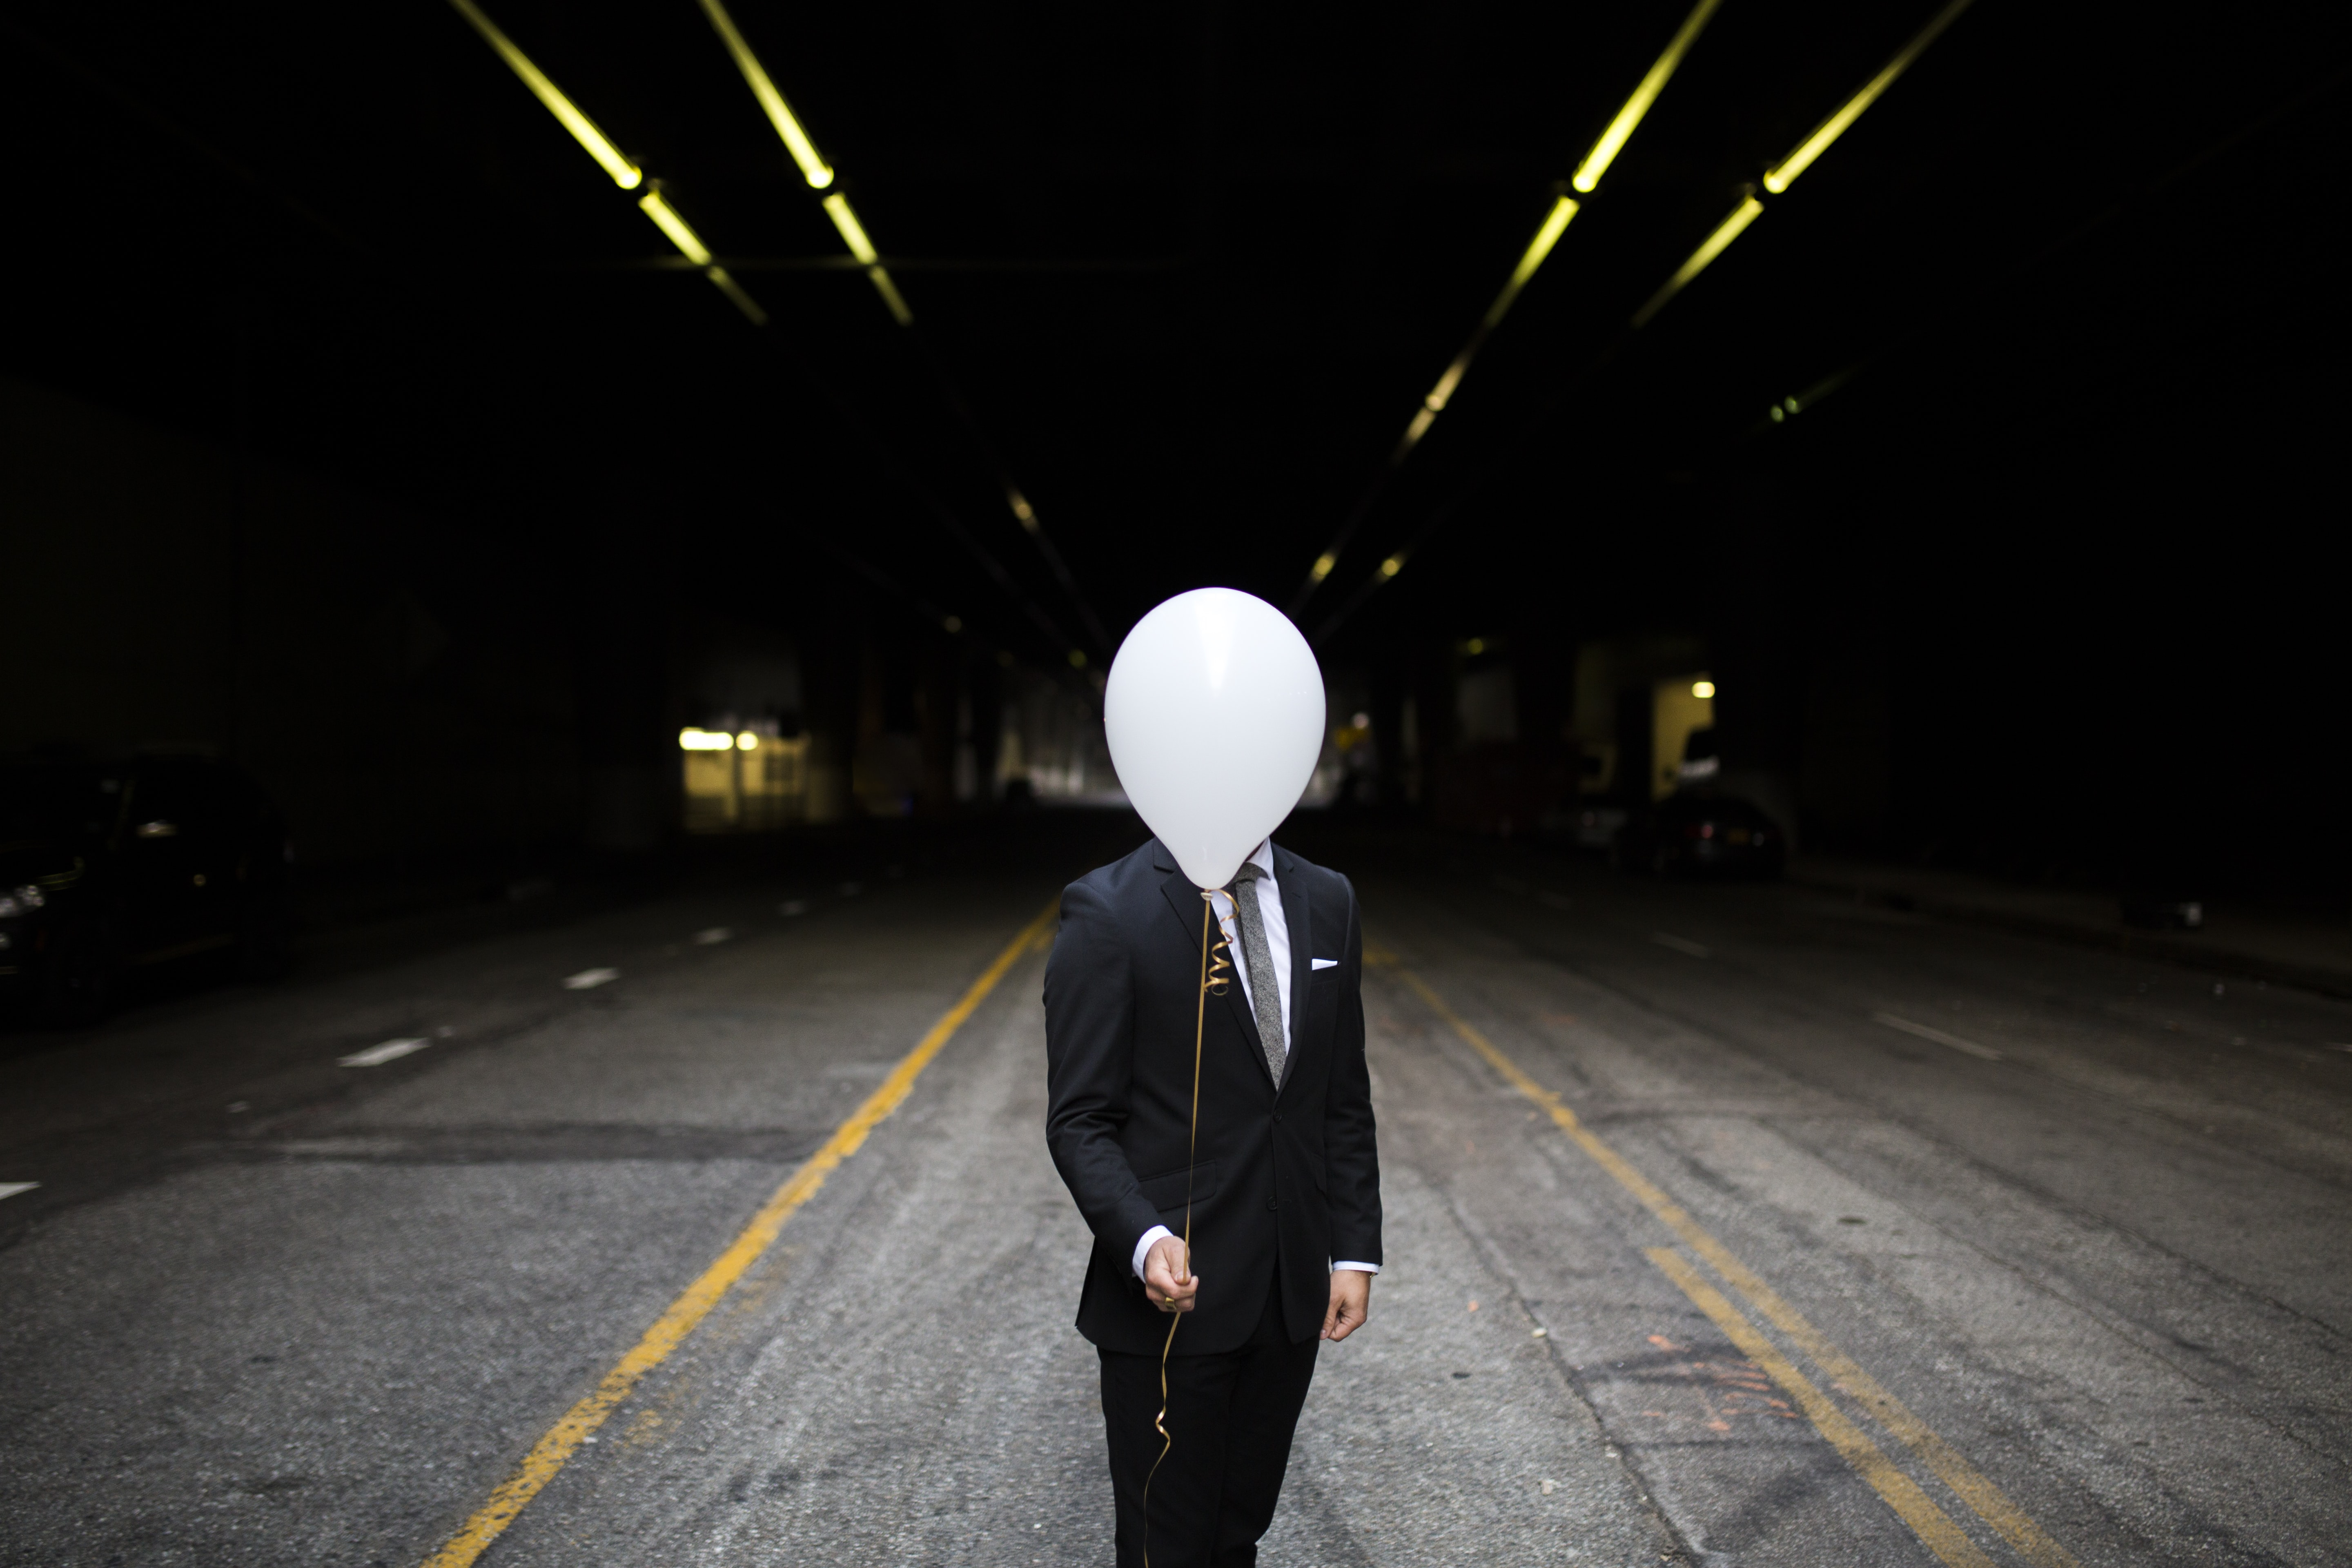 A man in a dark suit holding with a white balloon obscuring his face